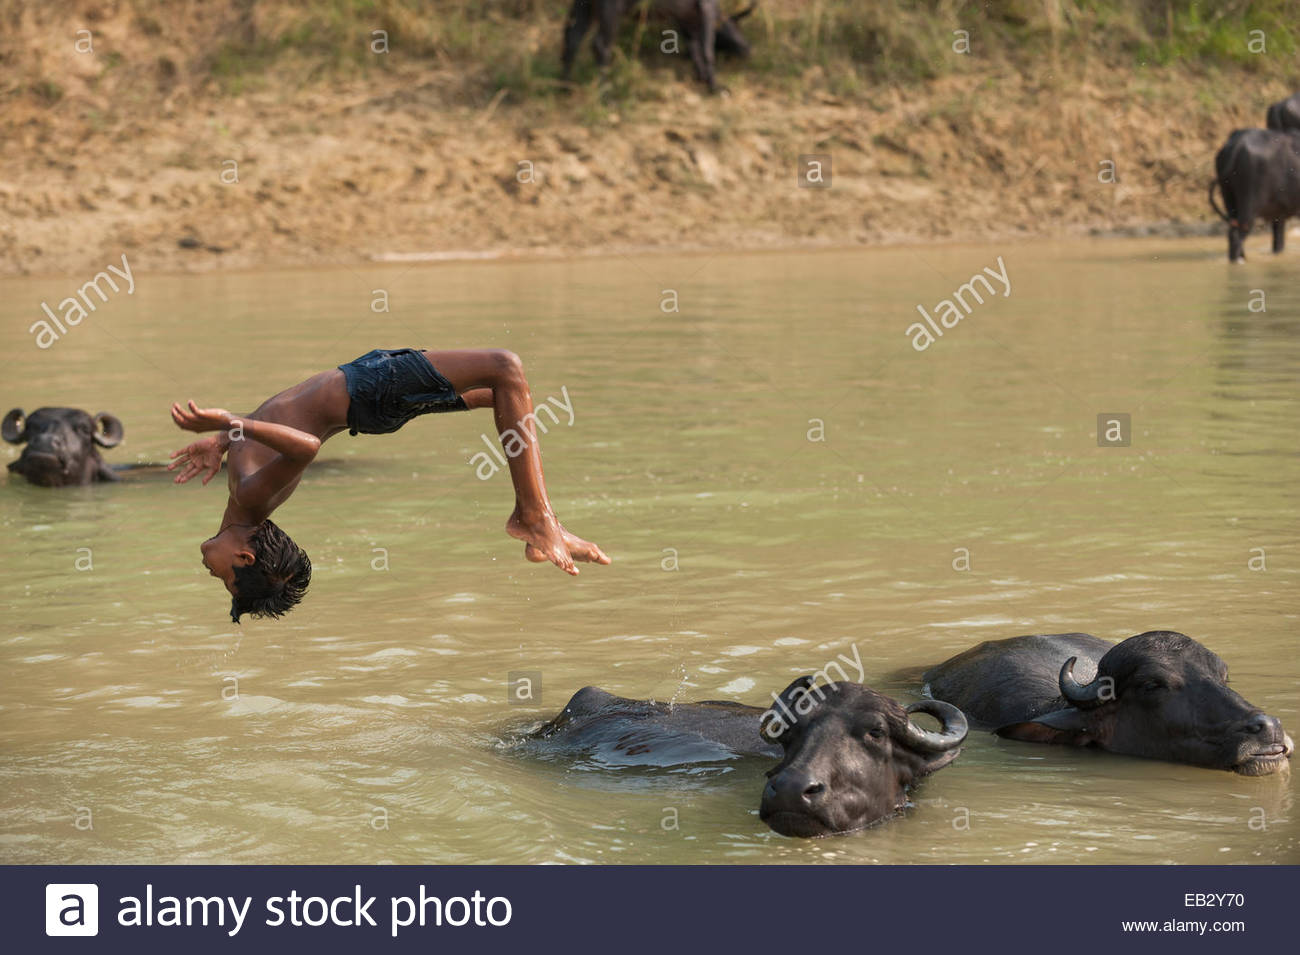 A boy messing about in the river diving from the back of a water buffalo in Nepal - Stock Image